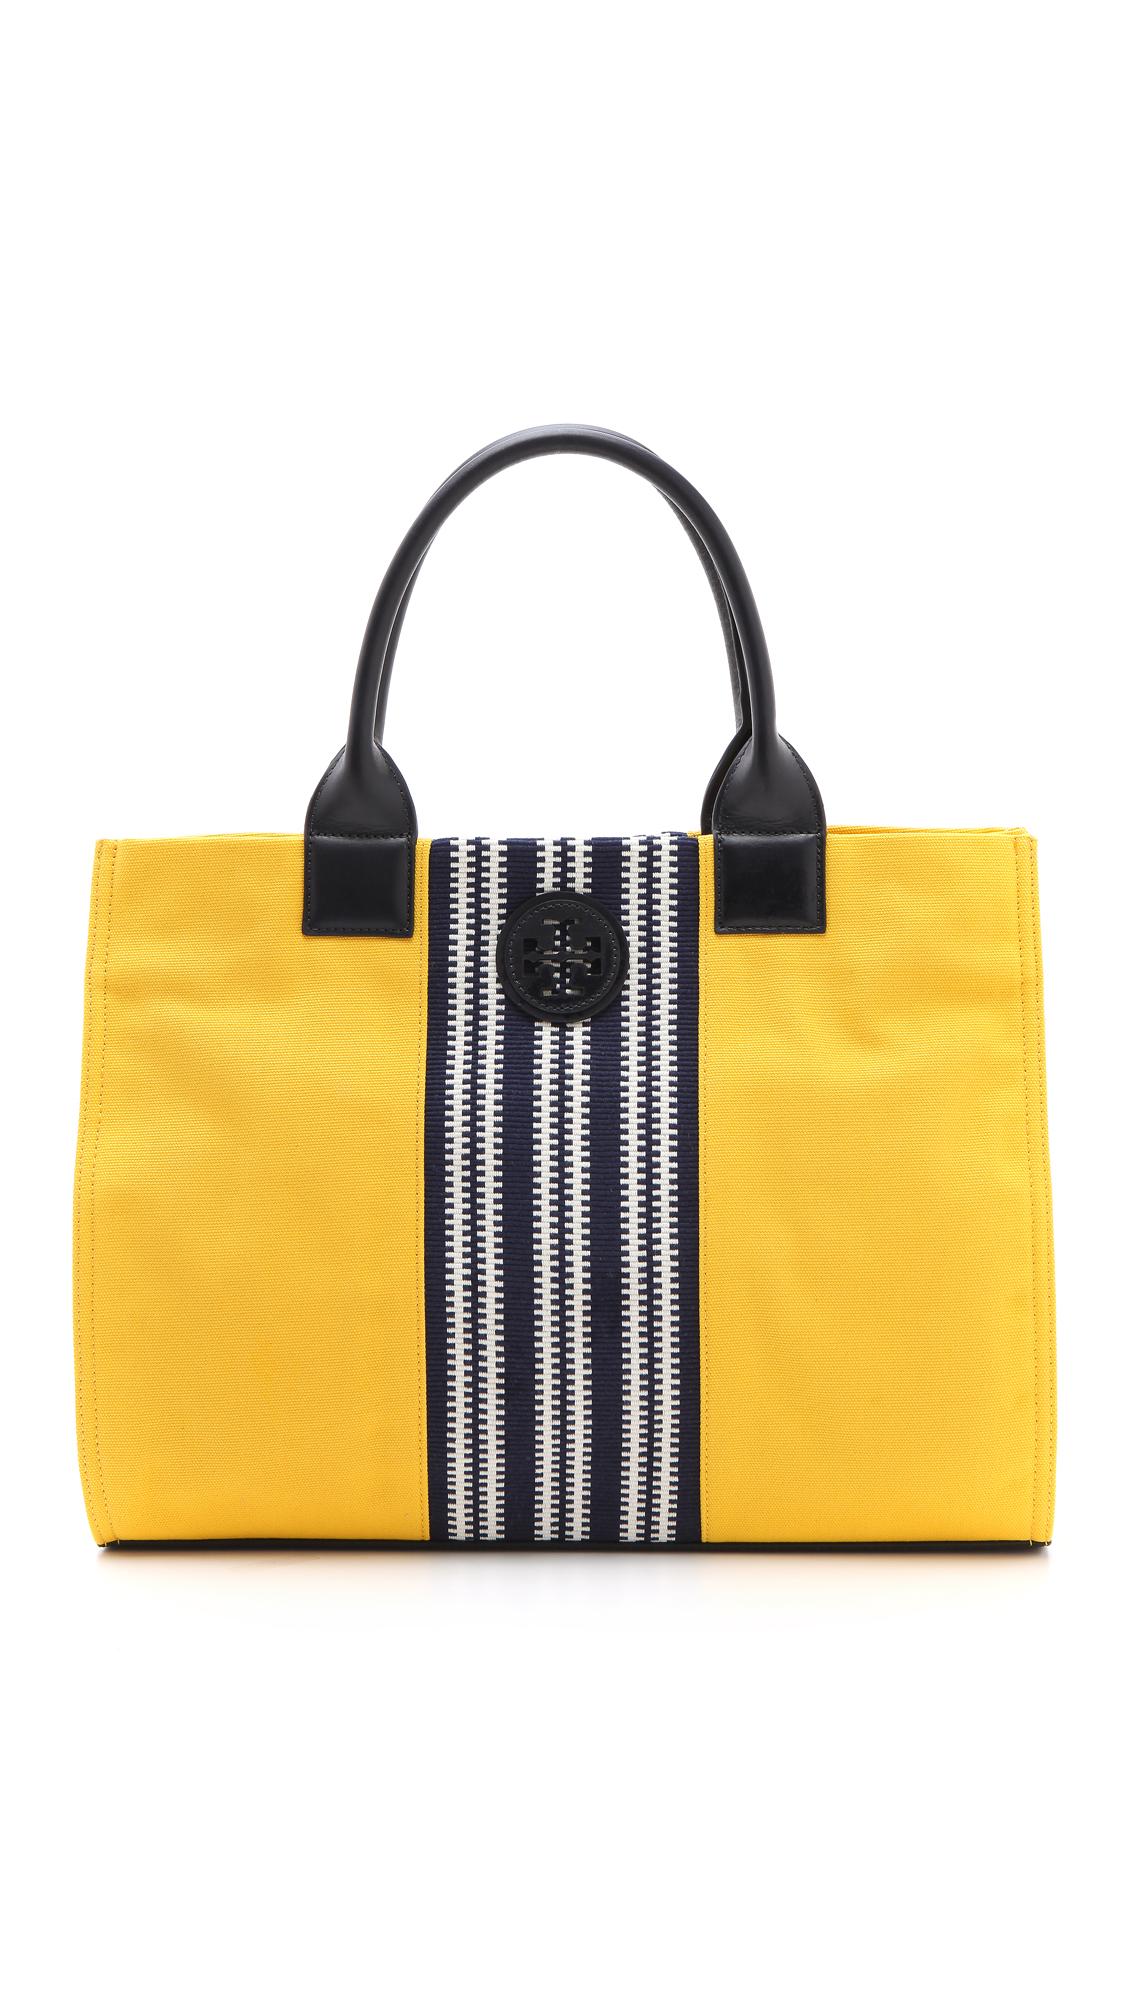 603cb04d138 Tory Burch Center Stripe Ella Tote